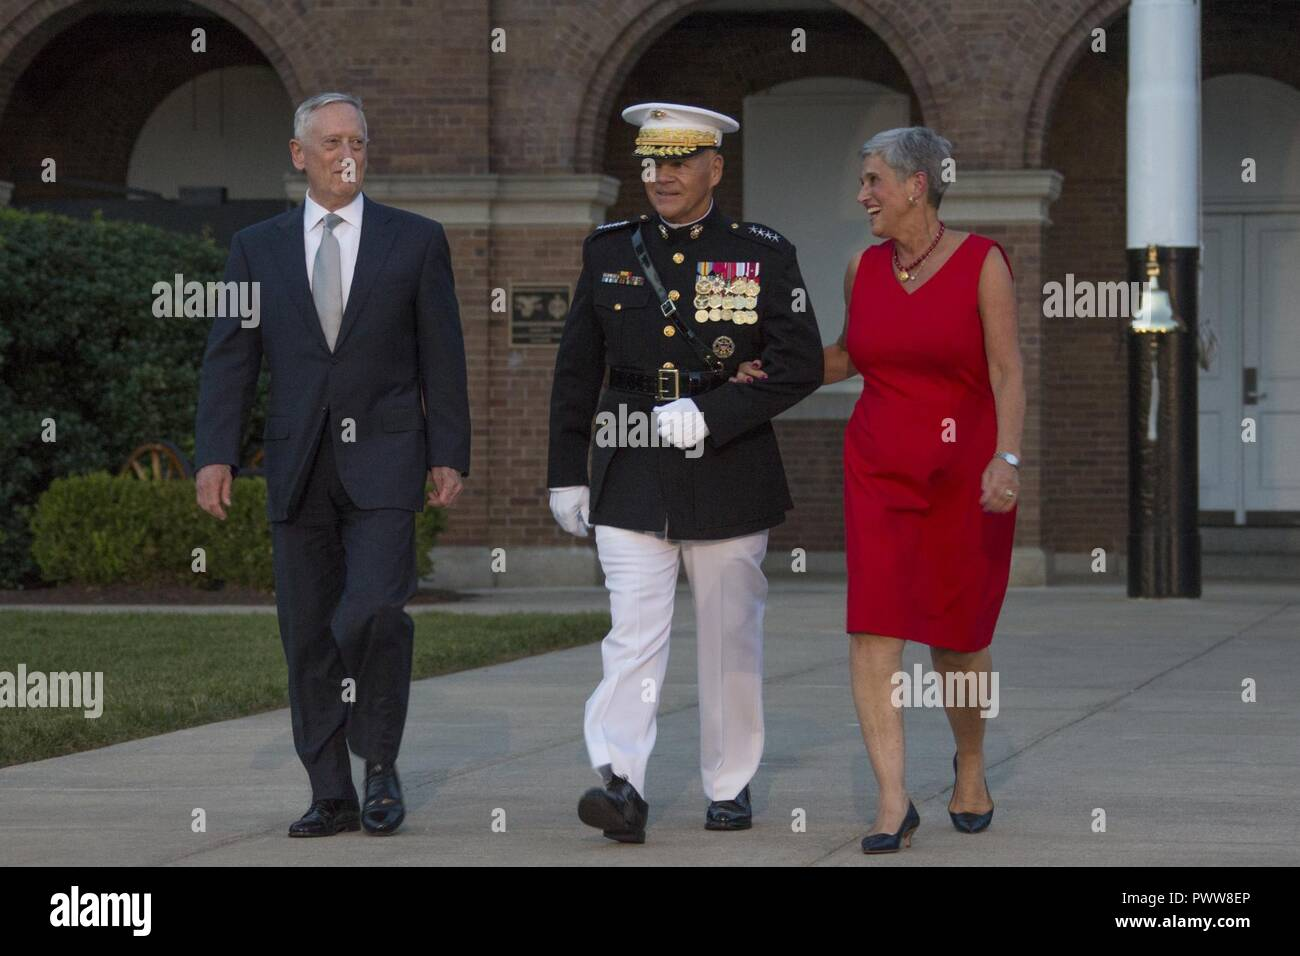 From left, Secretary James N. Mattis, Department ofDefense, Commandant of the Marine Corps Gen. Robert B. Neller, and D'Arcy Neller walk down center walk during an evening parade at Marine Barracks Washington, Washington, D.C., June 30, 2017. Neller hosted the parade and Mattis was the guest of honor. Stock Photo